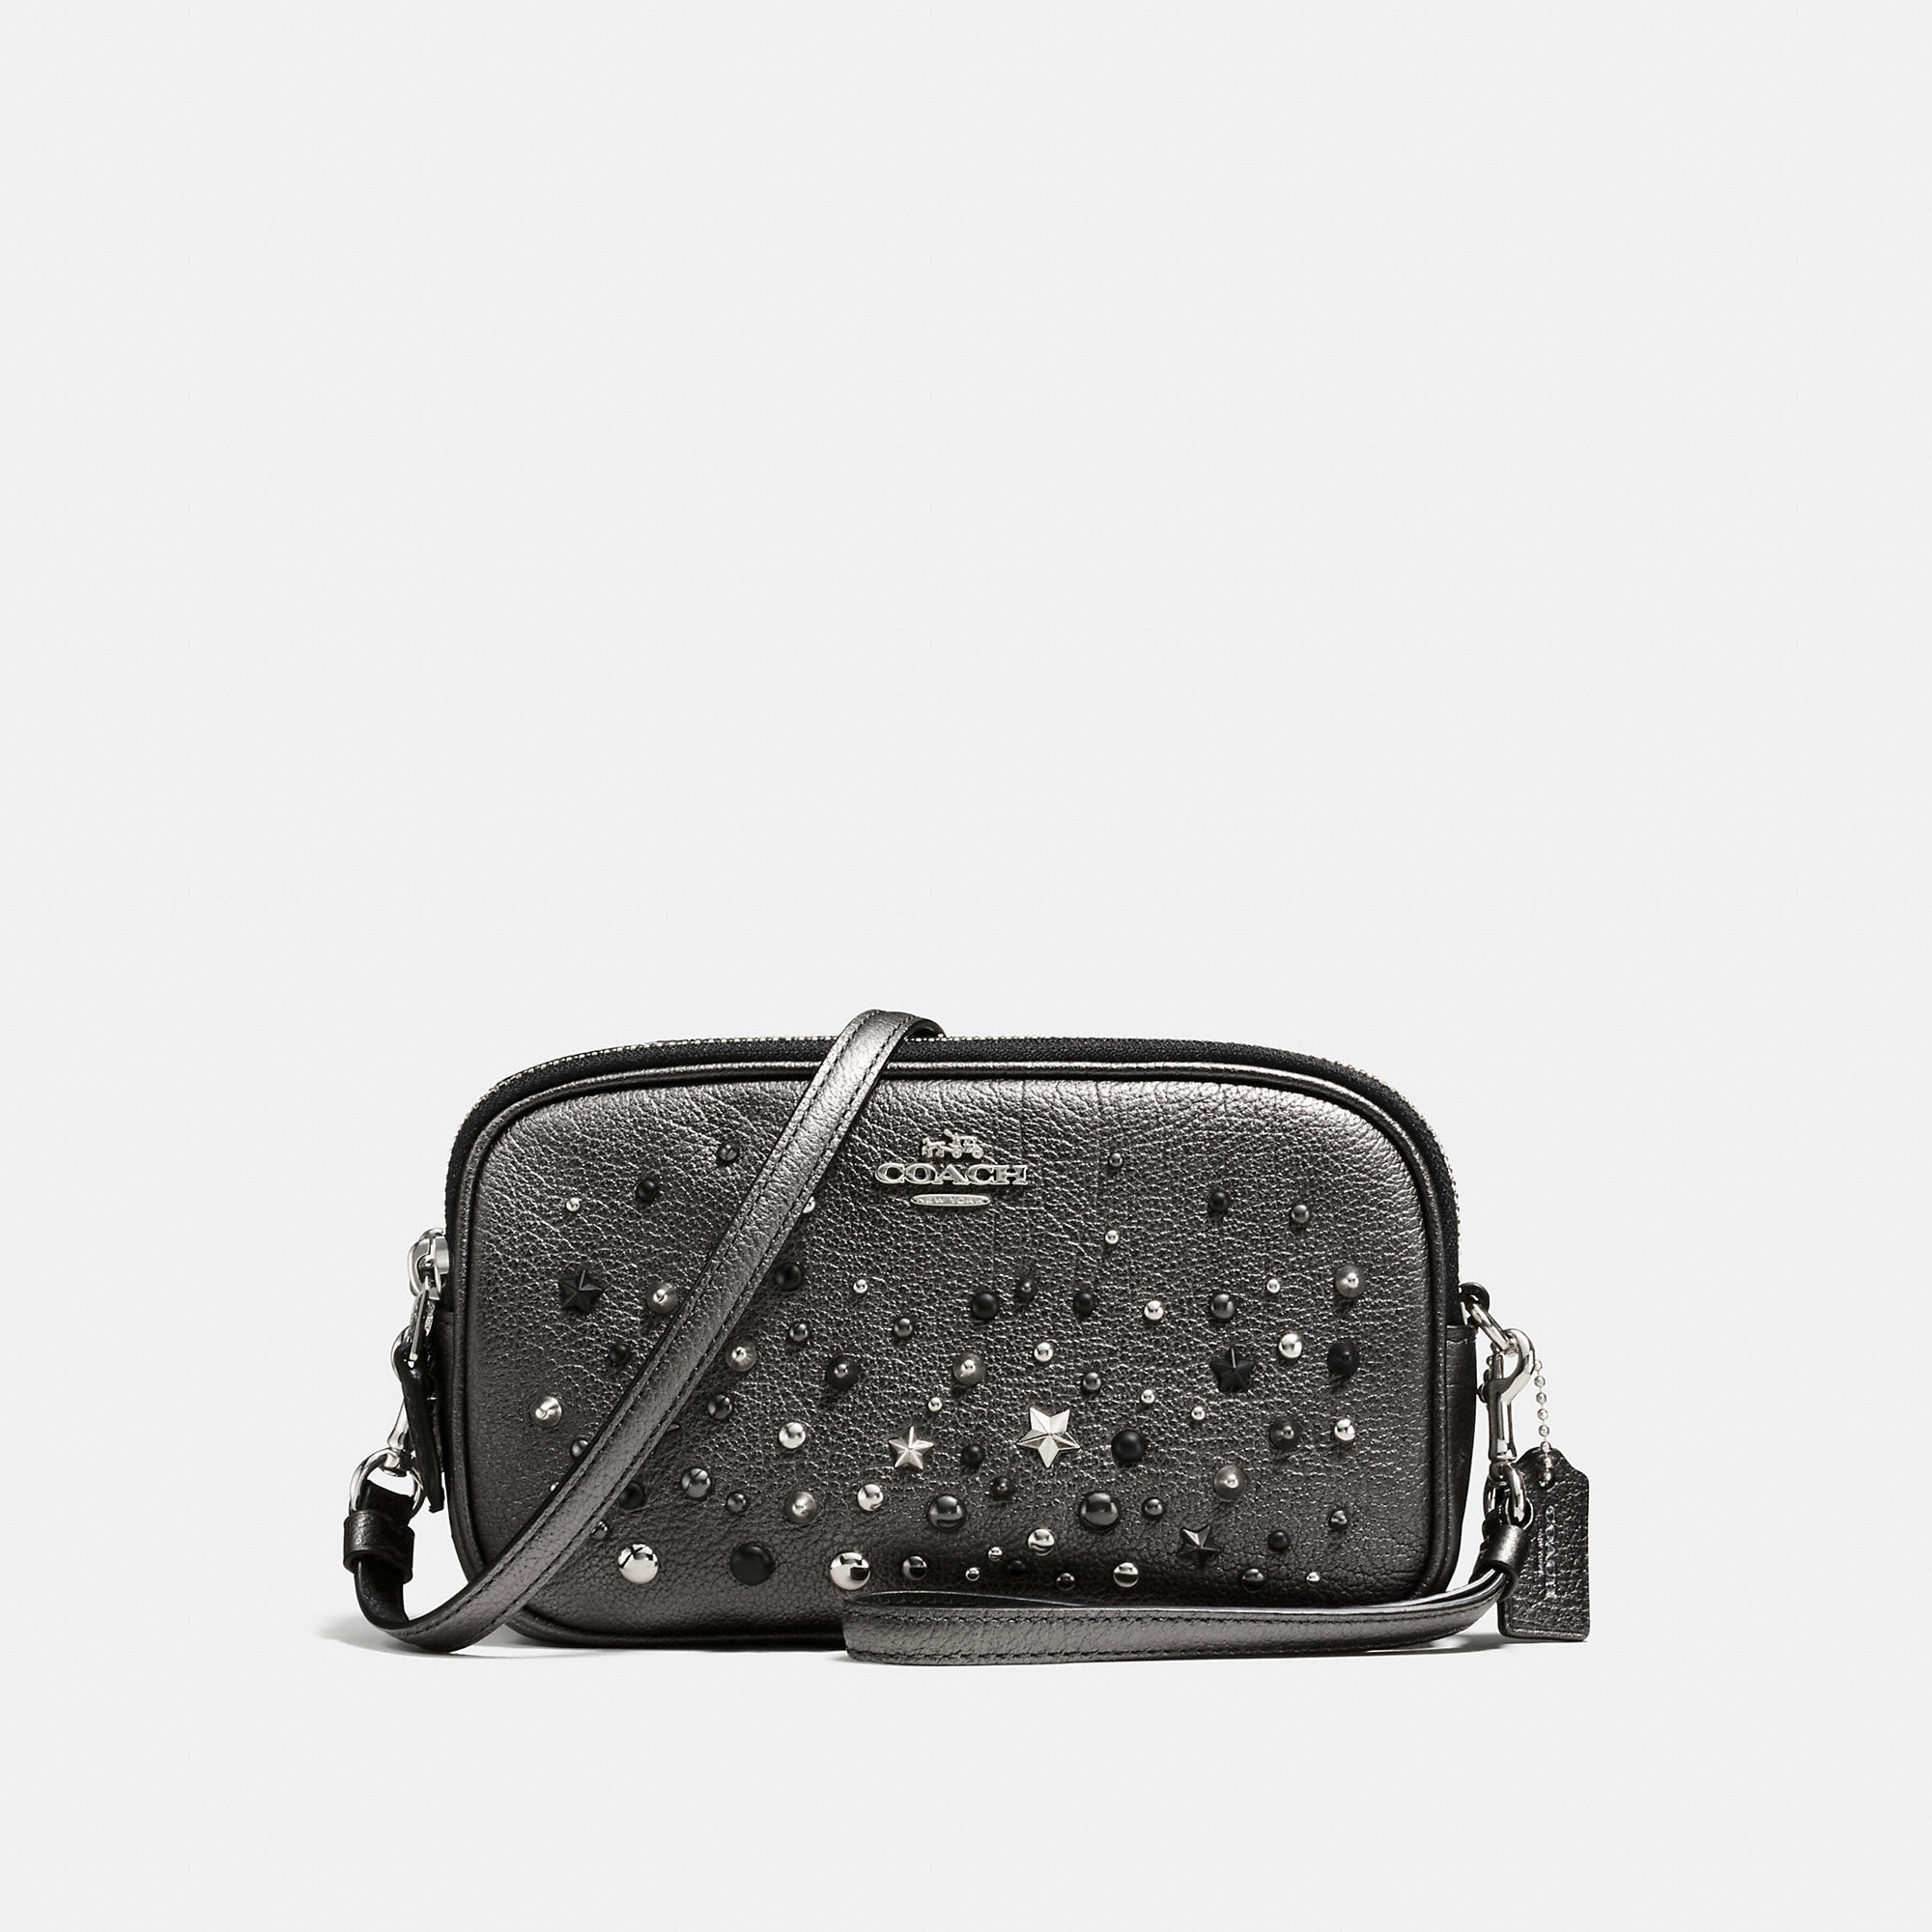 Coach Crossbody Clutch In Metallic Leather With Star Rivets